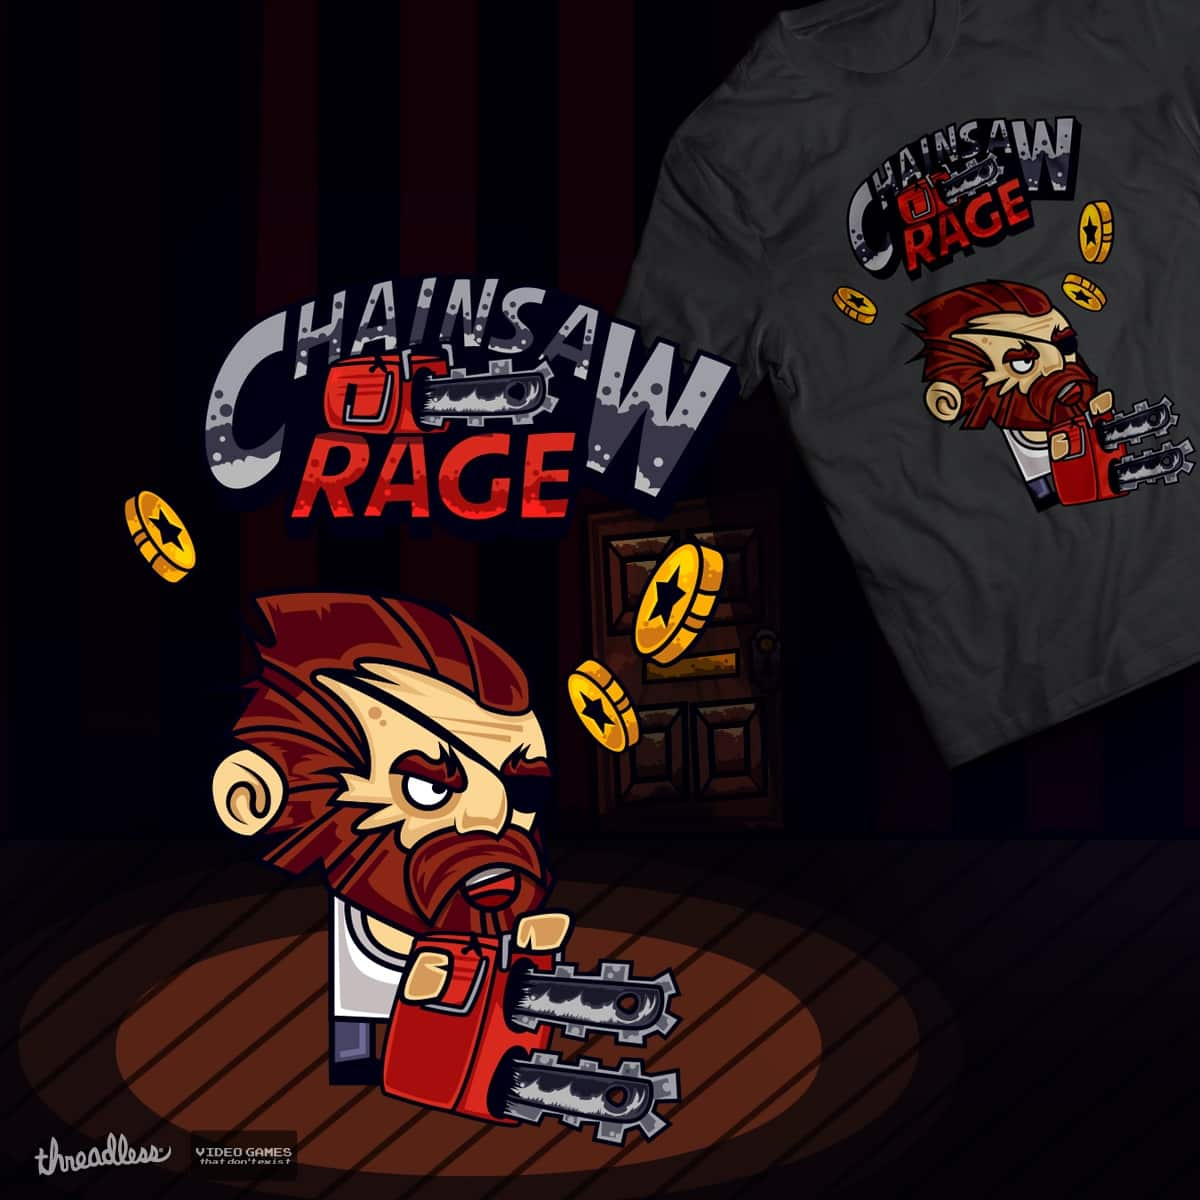 Chainsaw Rage by MikiboGraphics on Threadless